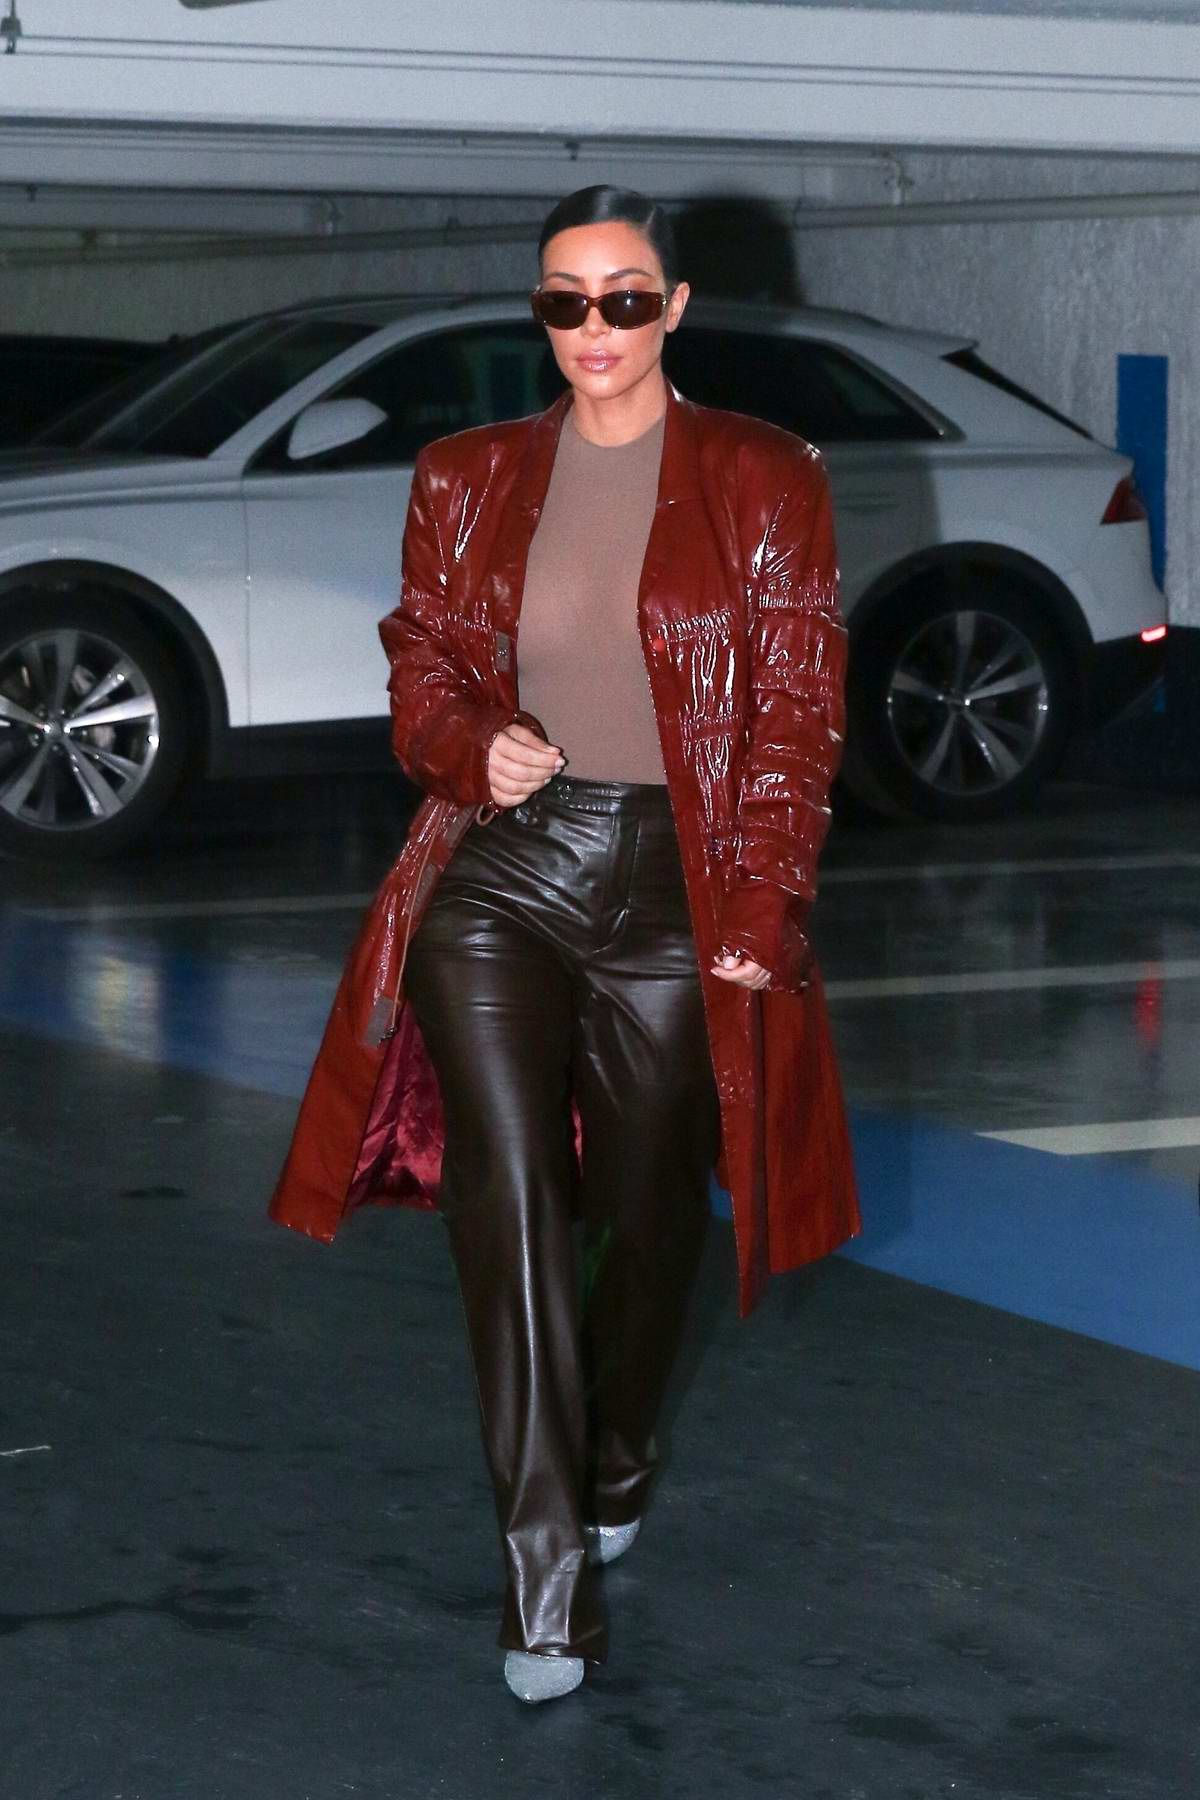 Kim Kardashian rocks a long braid and red leather coat while heading out with Kourtney Kardashian in Paris, France